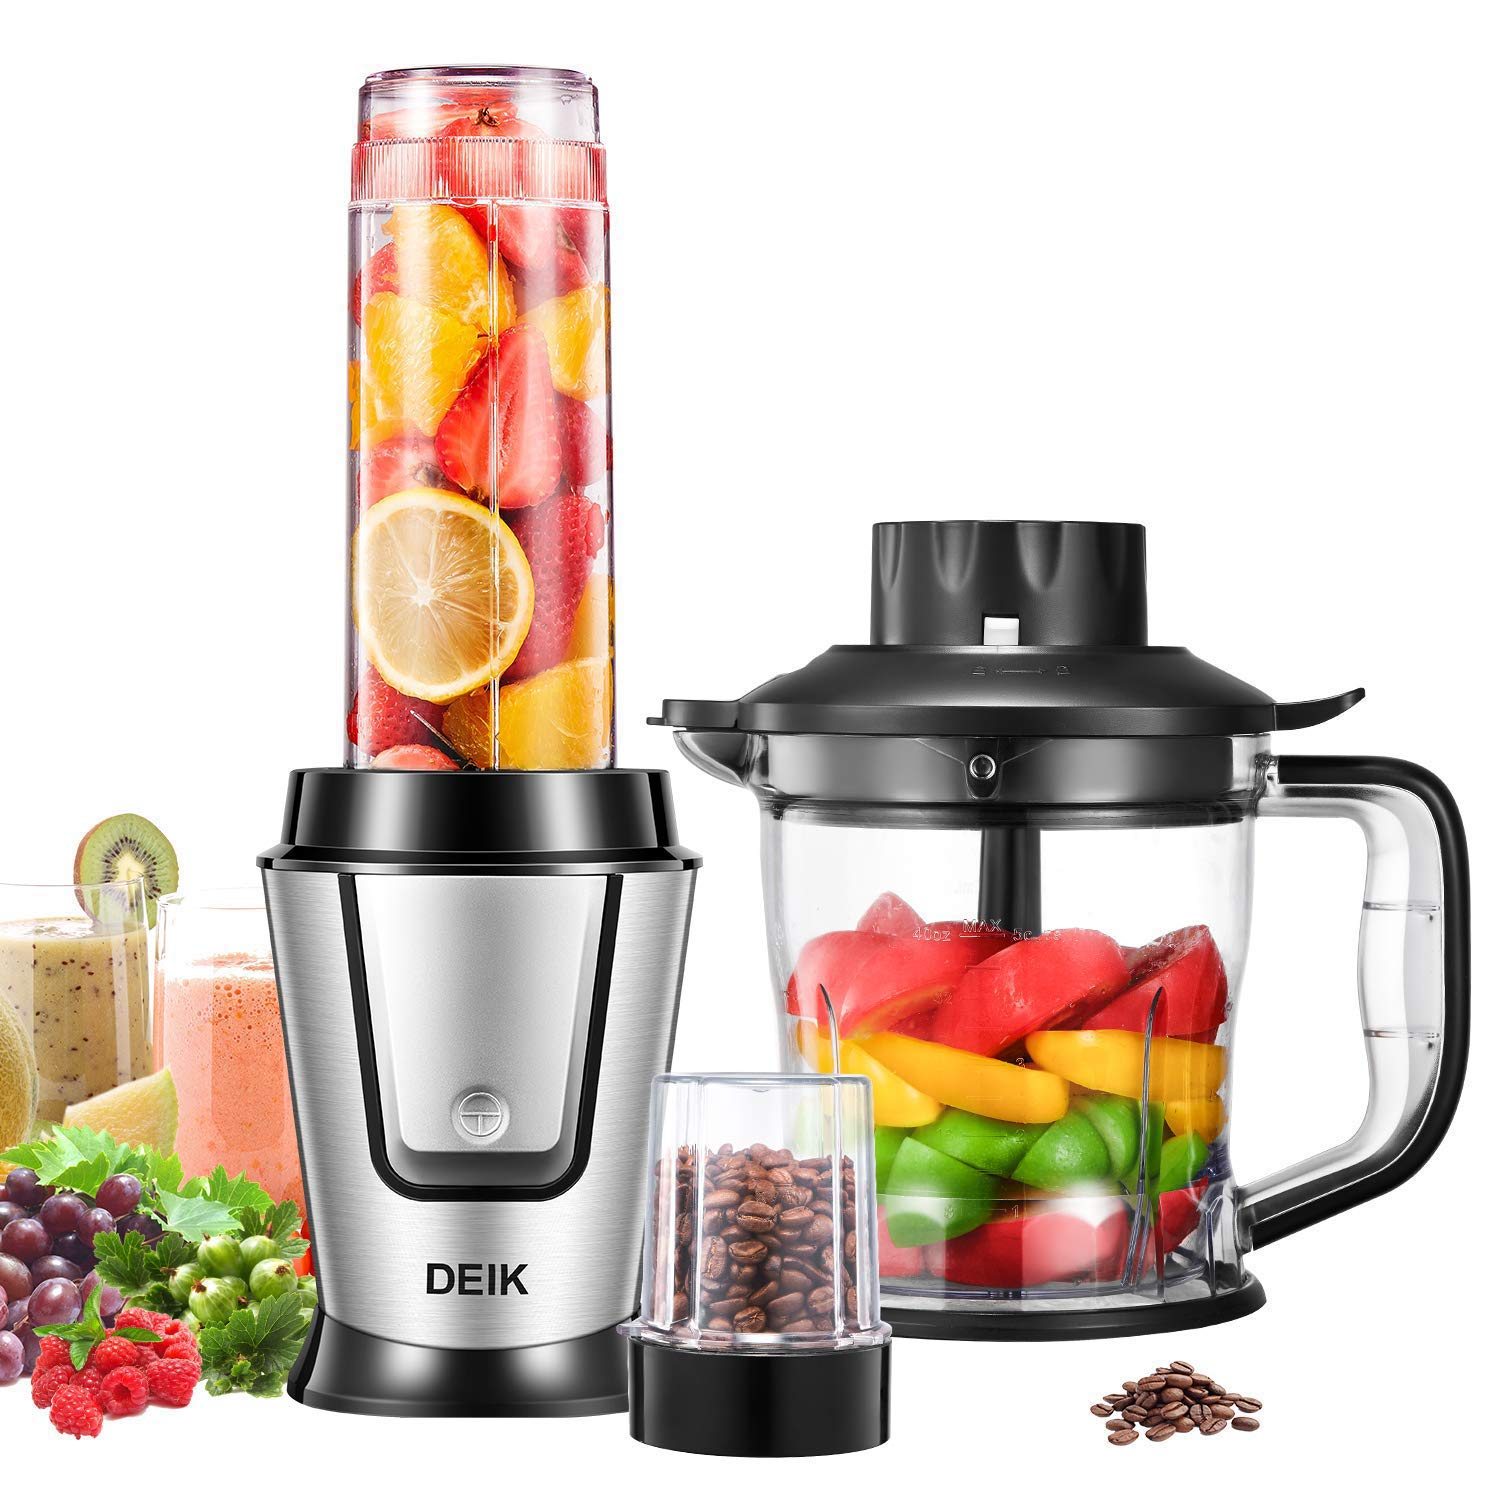 Deik Smoothie Personal Blender for Mixer/Chopper/Grinder, 2019 Upgraded 3-in-1 Professional Blender Maker with 600ml Portable BPA-Free Bottle, 4 Stainless Steel Sharp Blades, High-Speed 500W by Deik